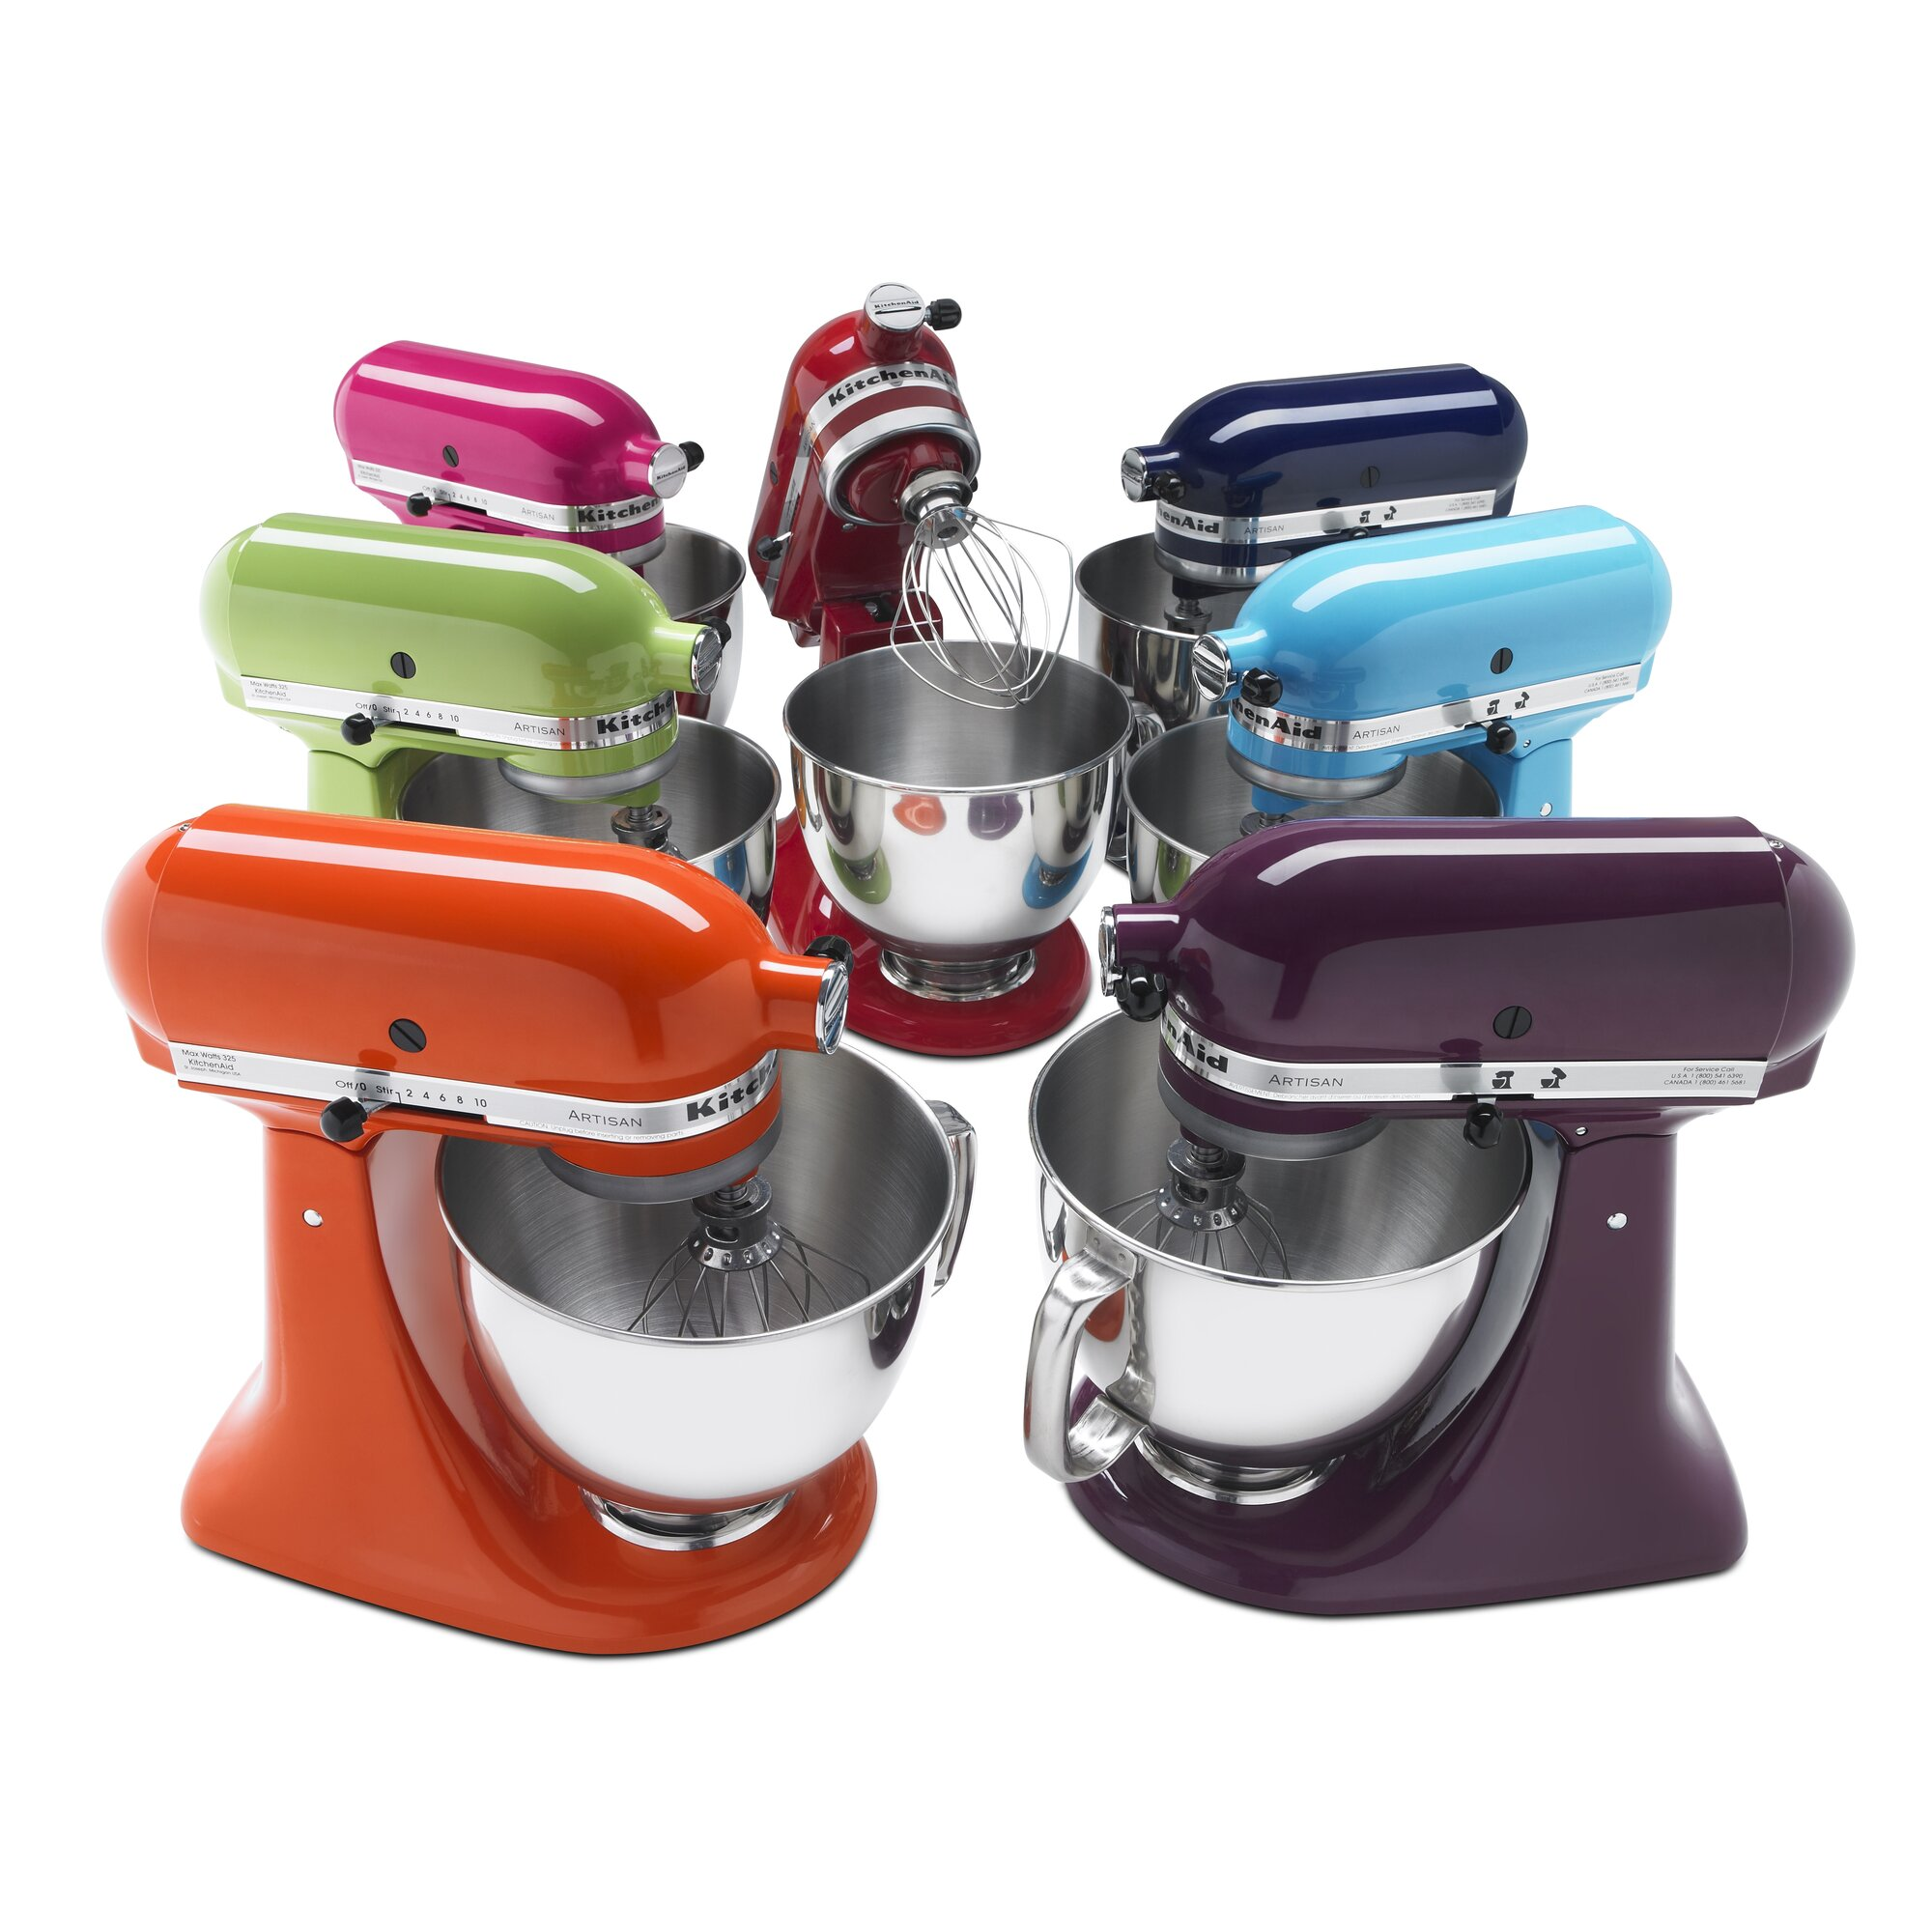 Kitchenaid stand mixers colors - Artisan Series 5 Qt Stand Mixer With Stainless Steel Glass Bowls